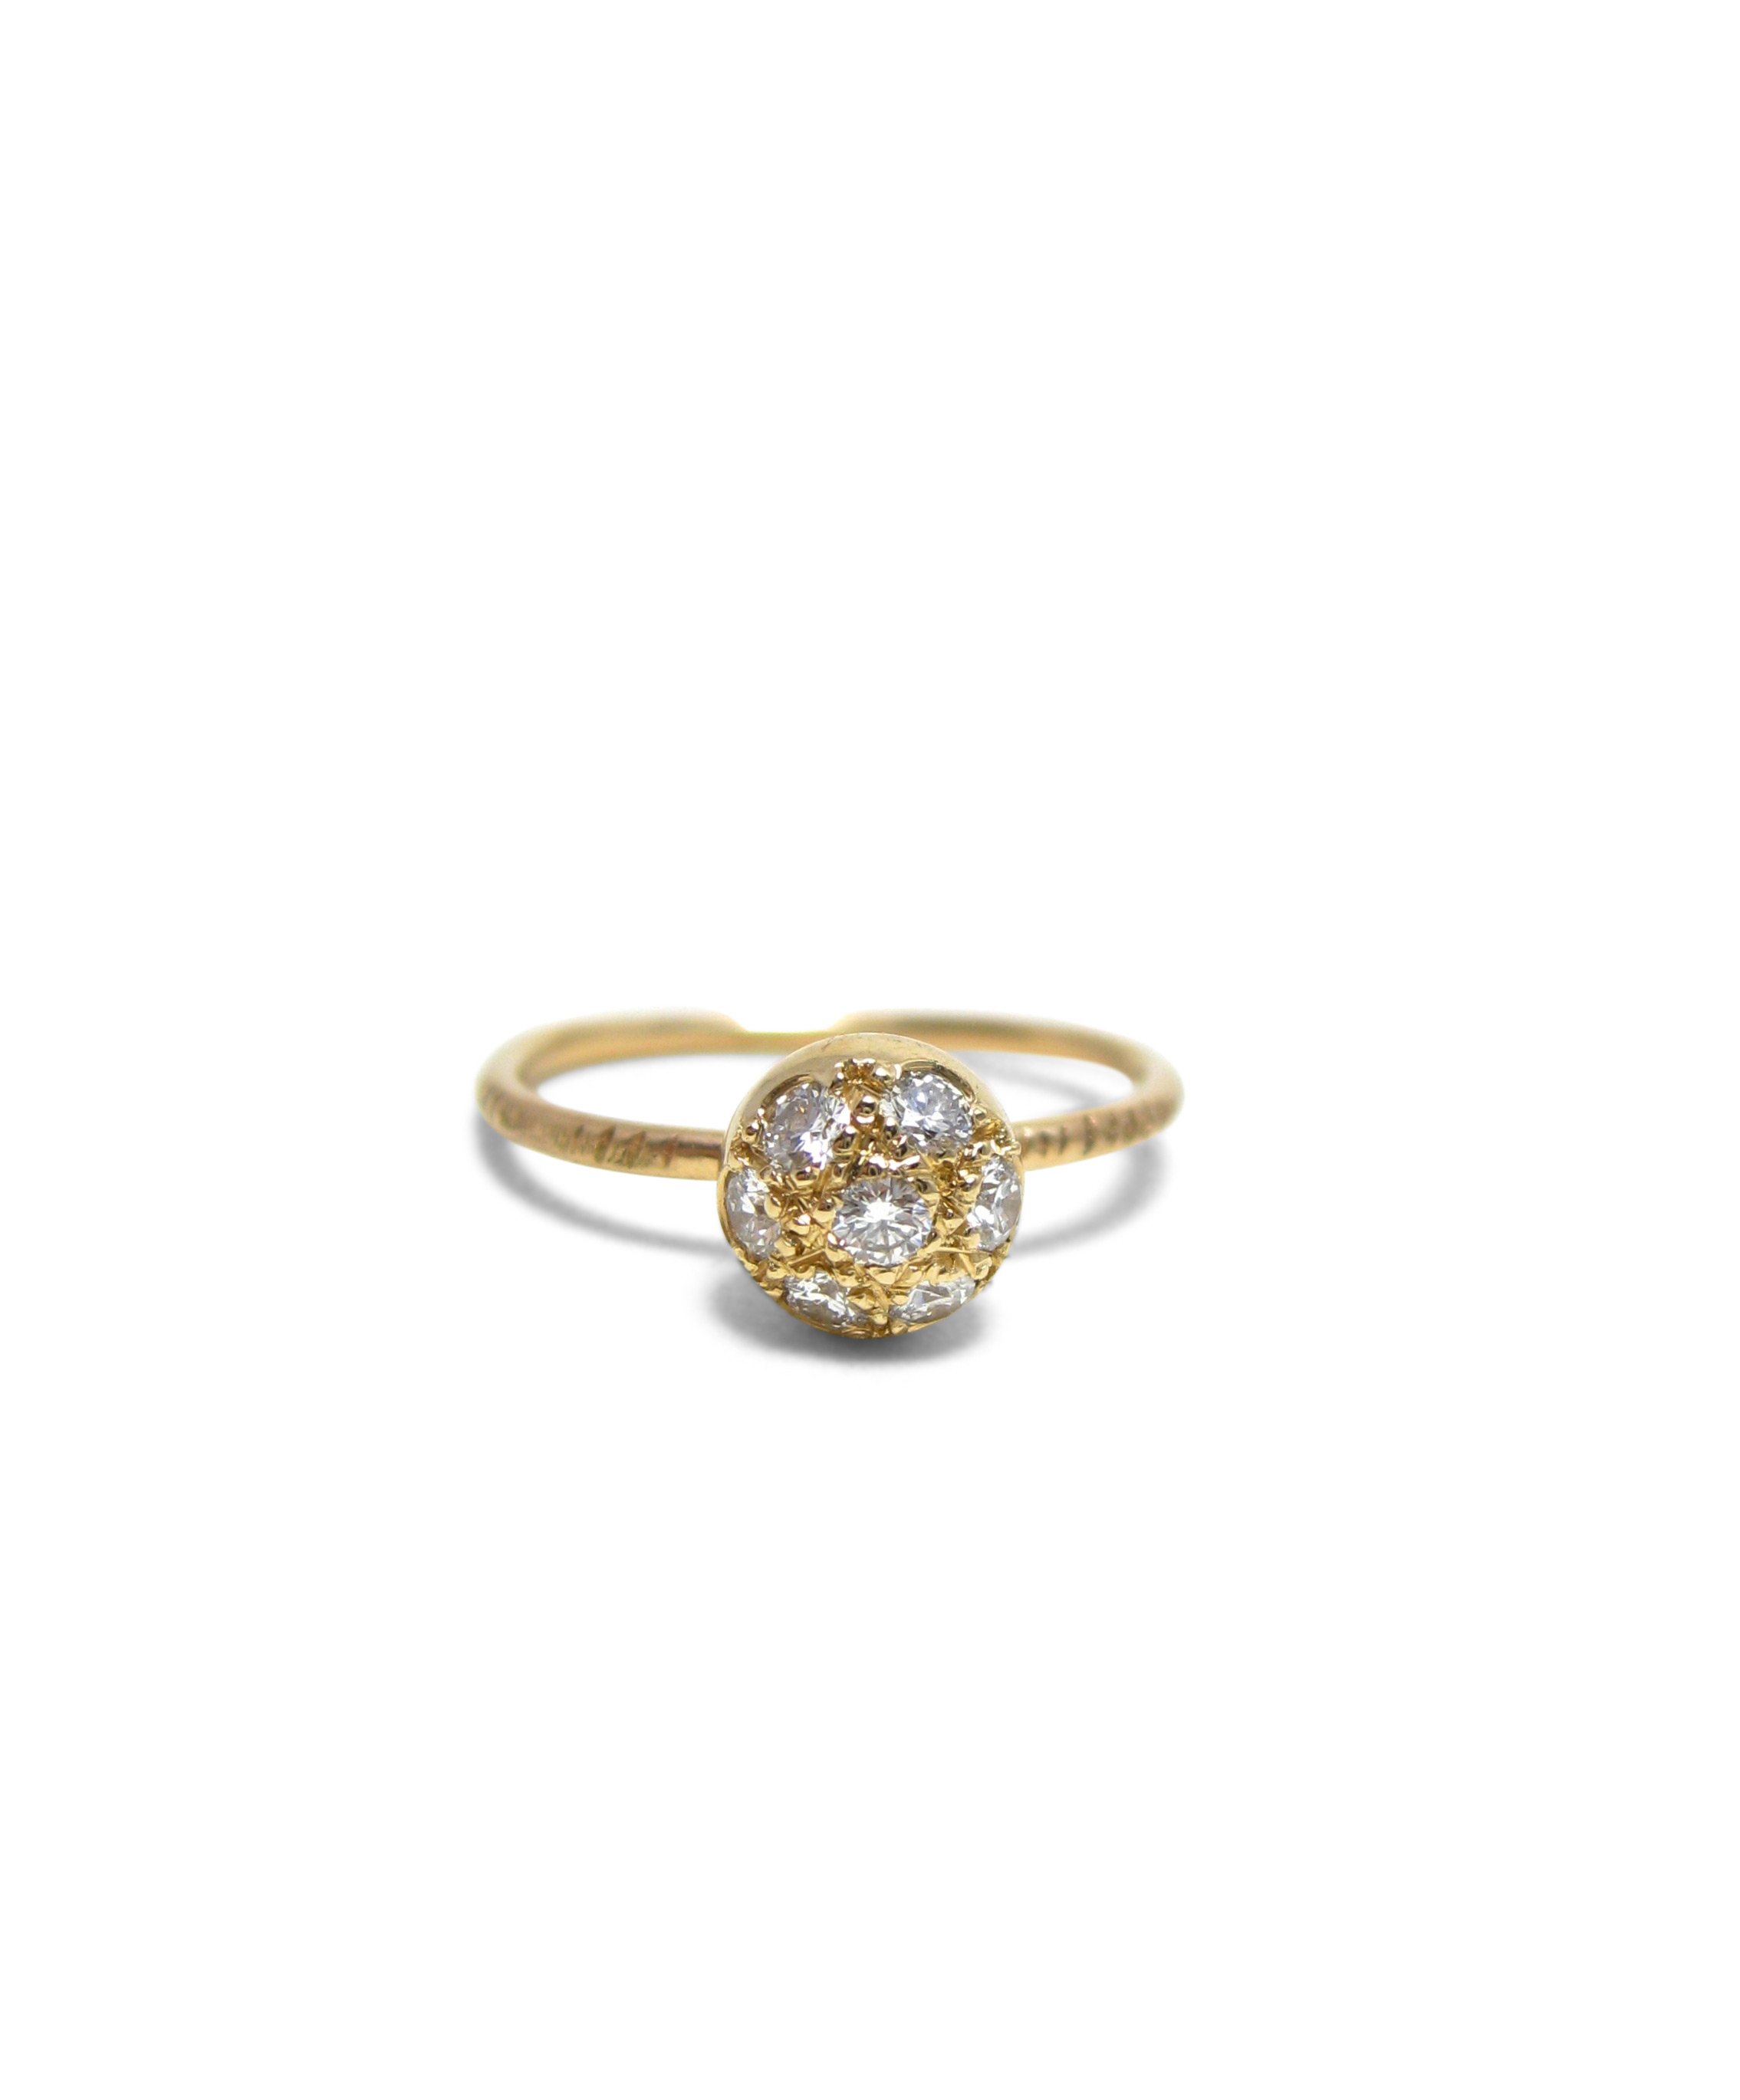 Sparkle-Ball-ring-recycled-diamonds-14-karat-gold